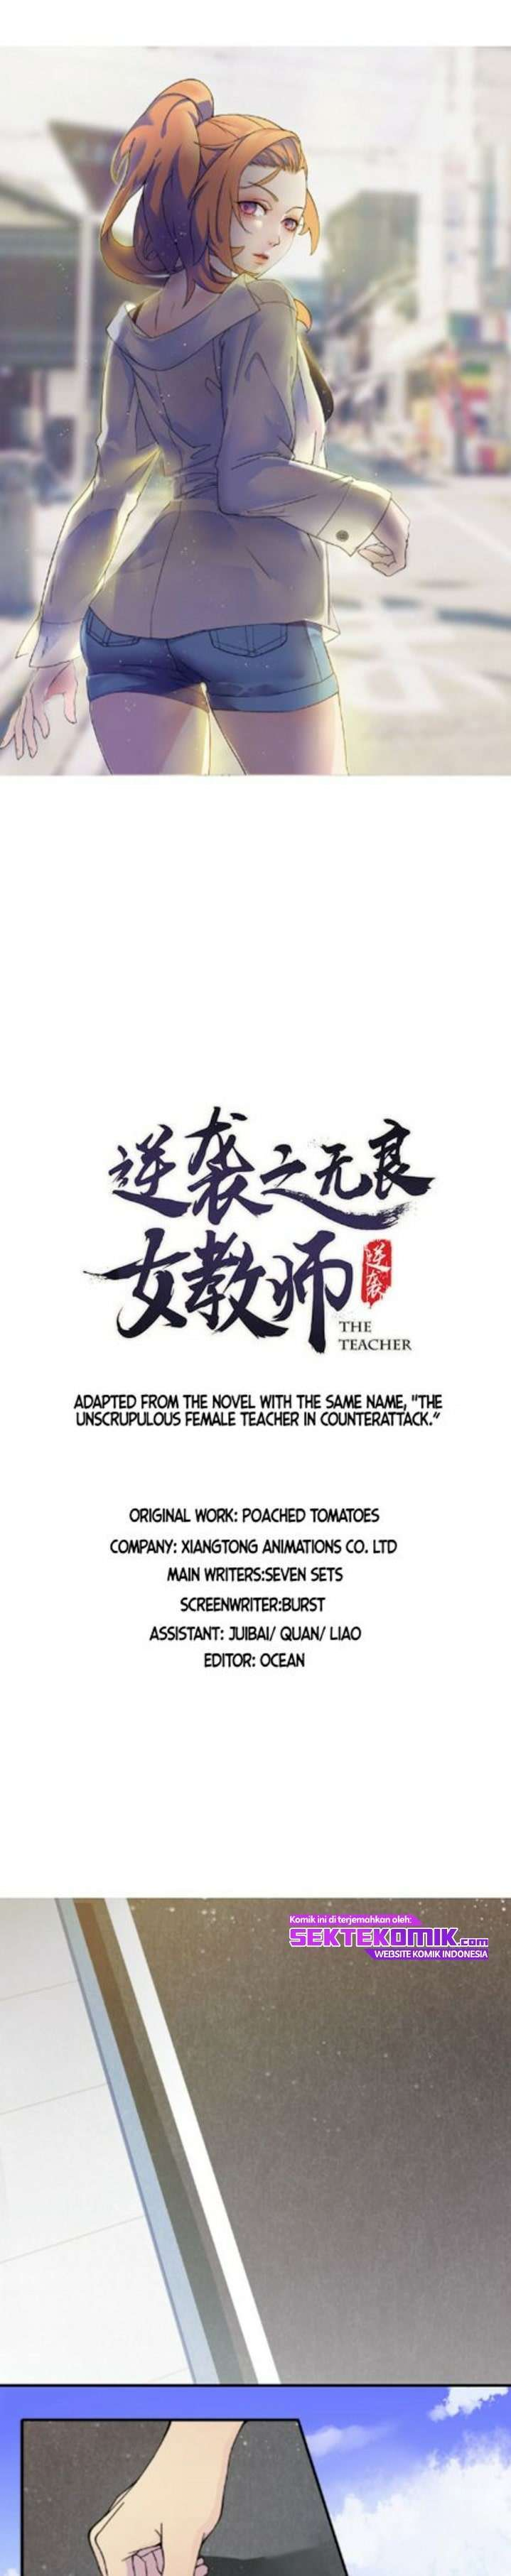 The Female Teacher Who Fight Back Chapter 3